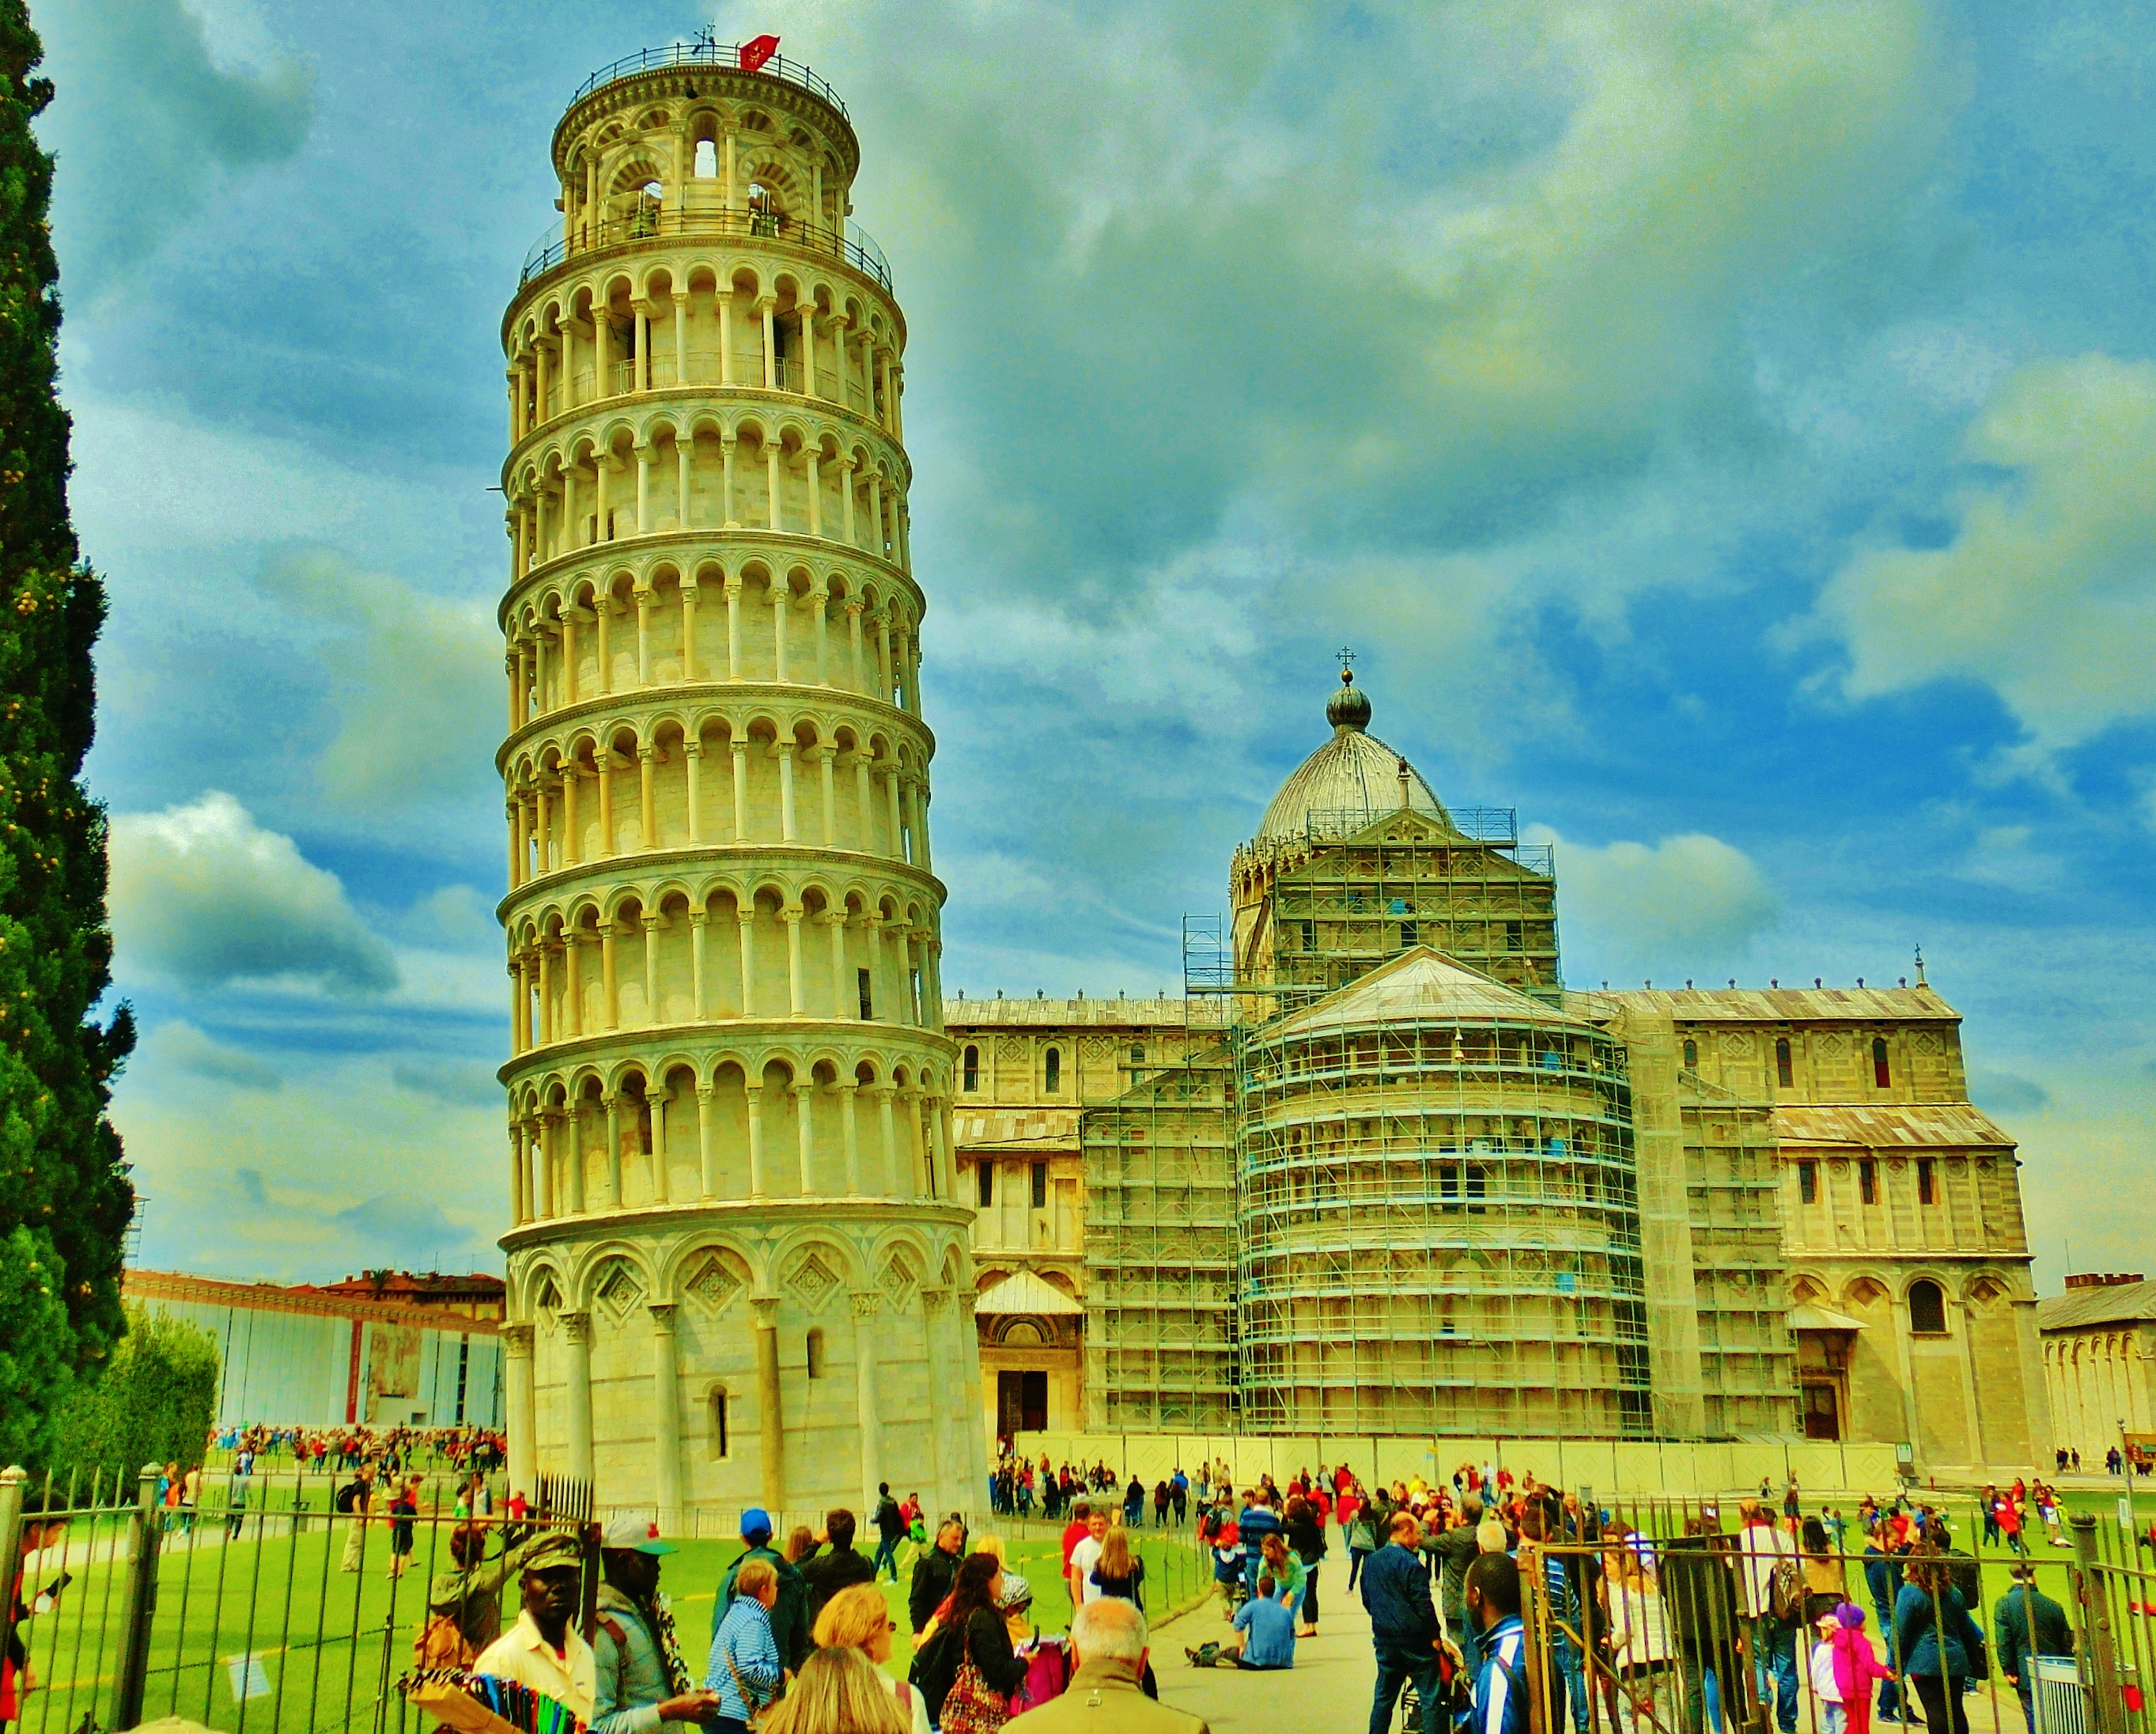 2. Leaning Tower of Pisa